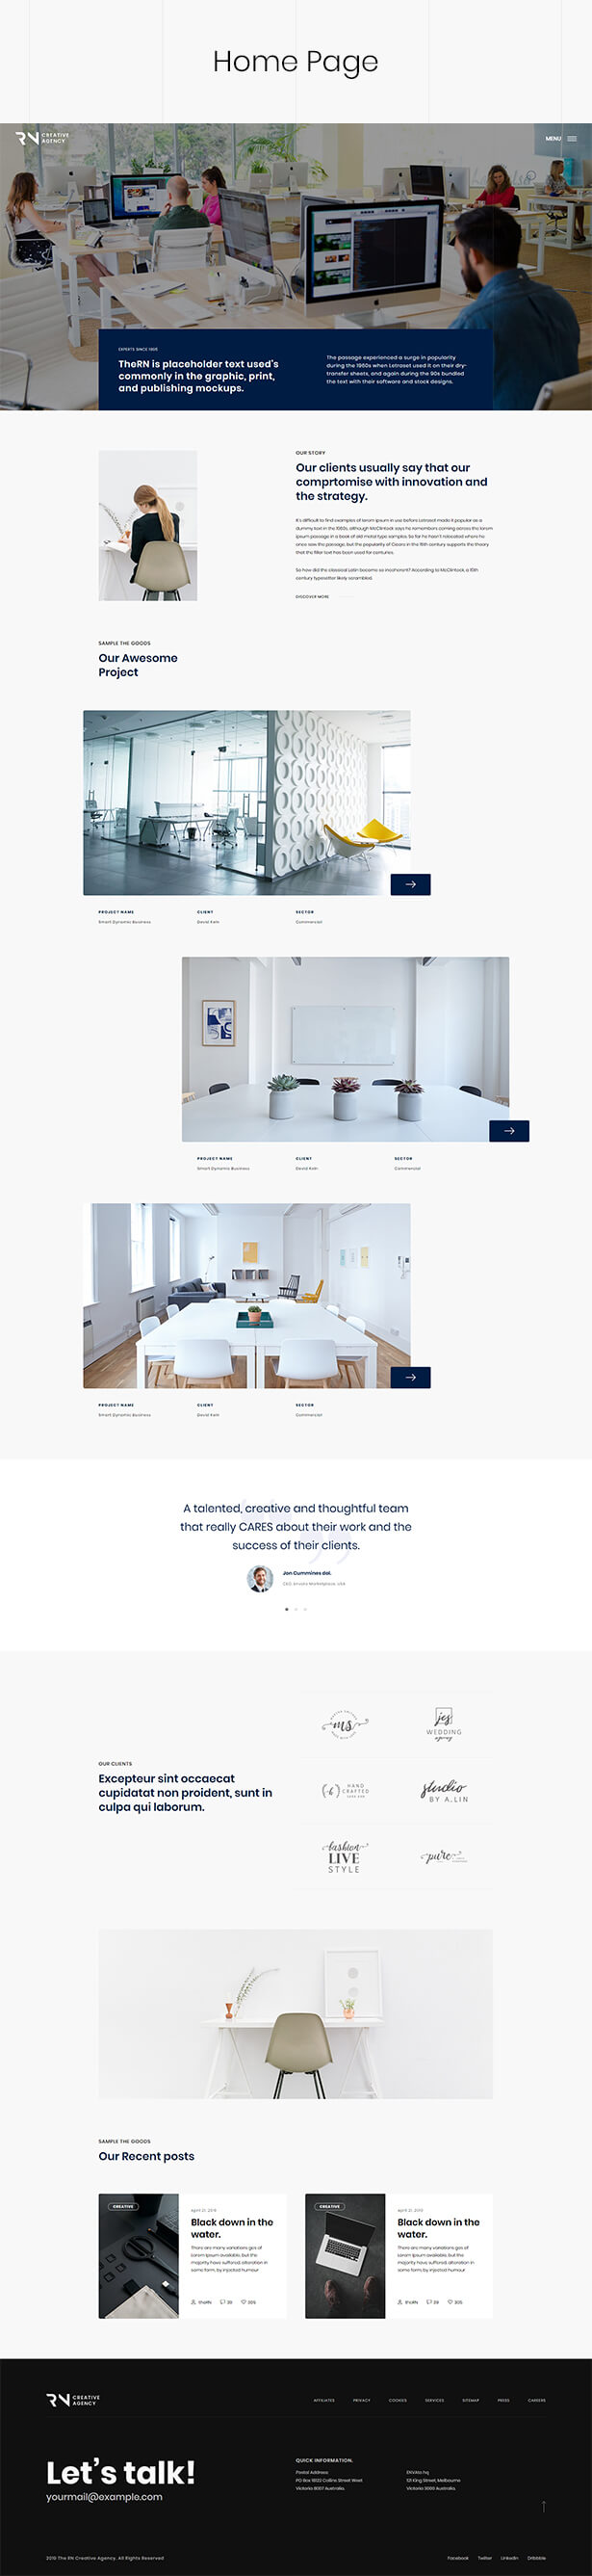 TheRN - Creative Agency HTML5 Template - 2